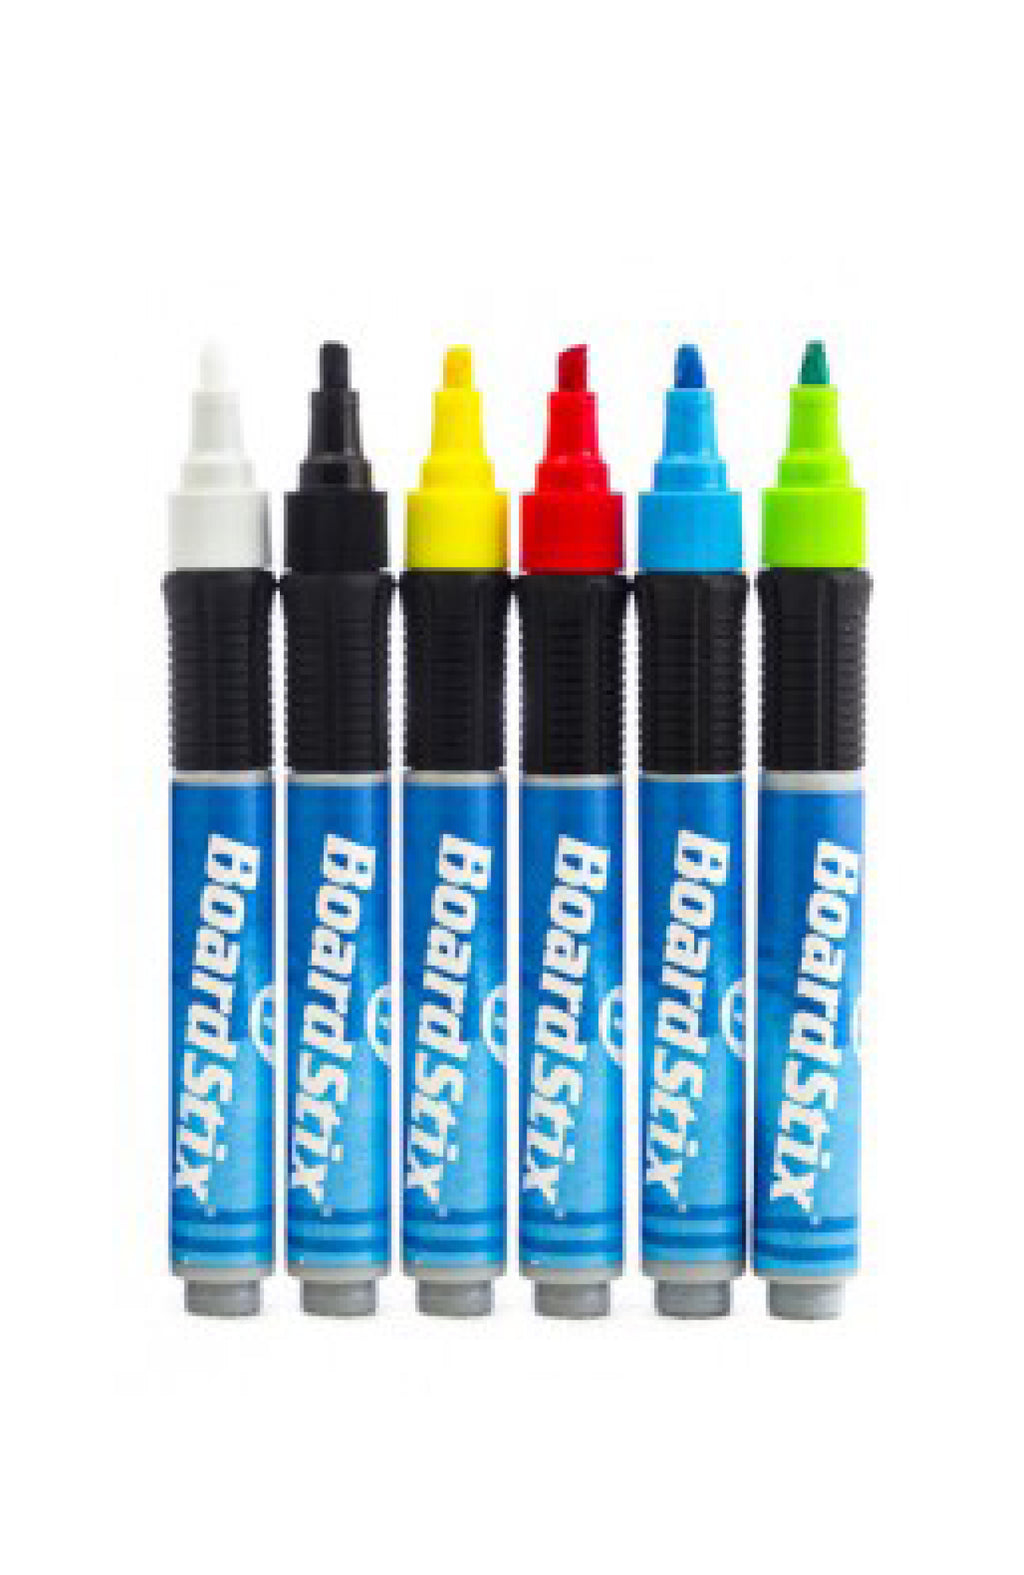 GRIP MARKER SIX PACK PLASTIC BARELLED PENS